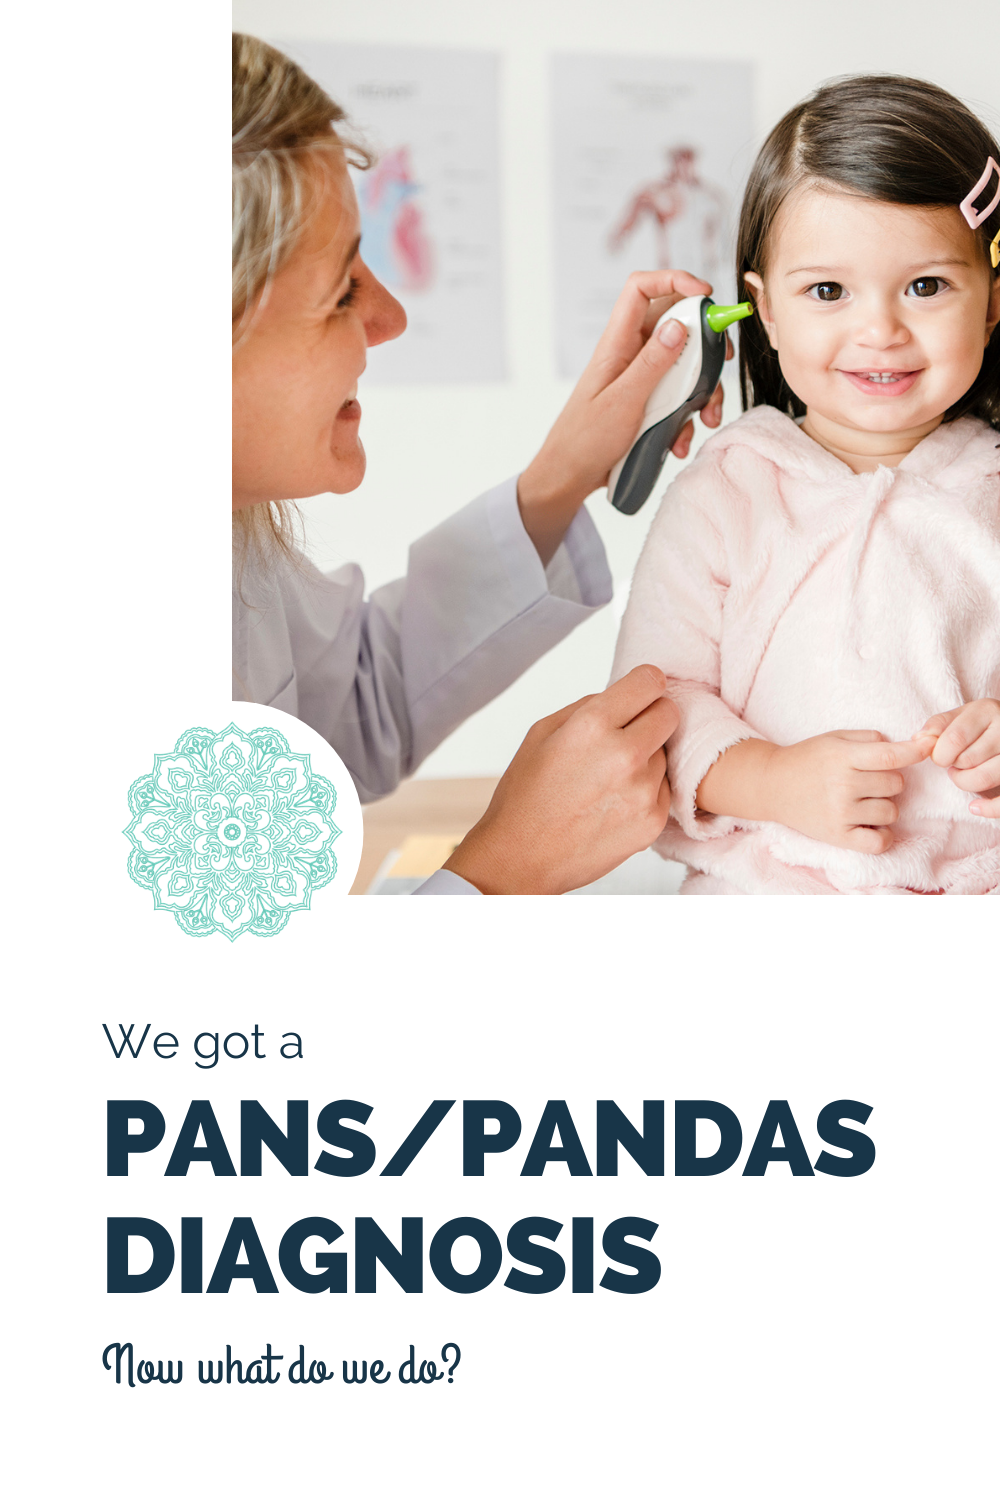 a young girl at the doctor's office getting a diagnosis from a female doctor who is smiling in a friendly manner and the words PANS PANDAS Diagnosis is written in bold blue letters under the photo.